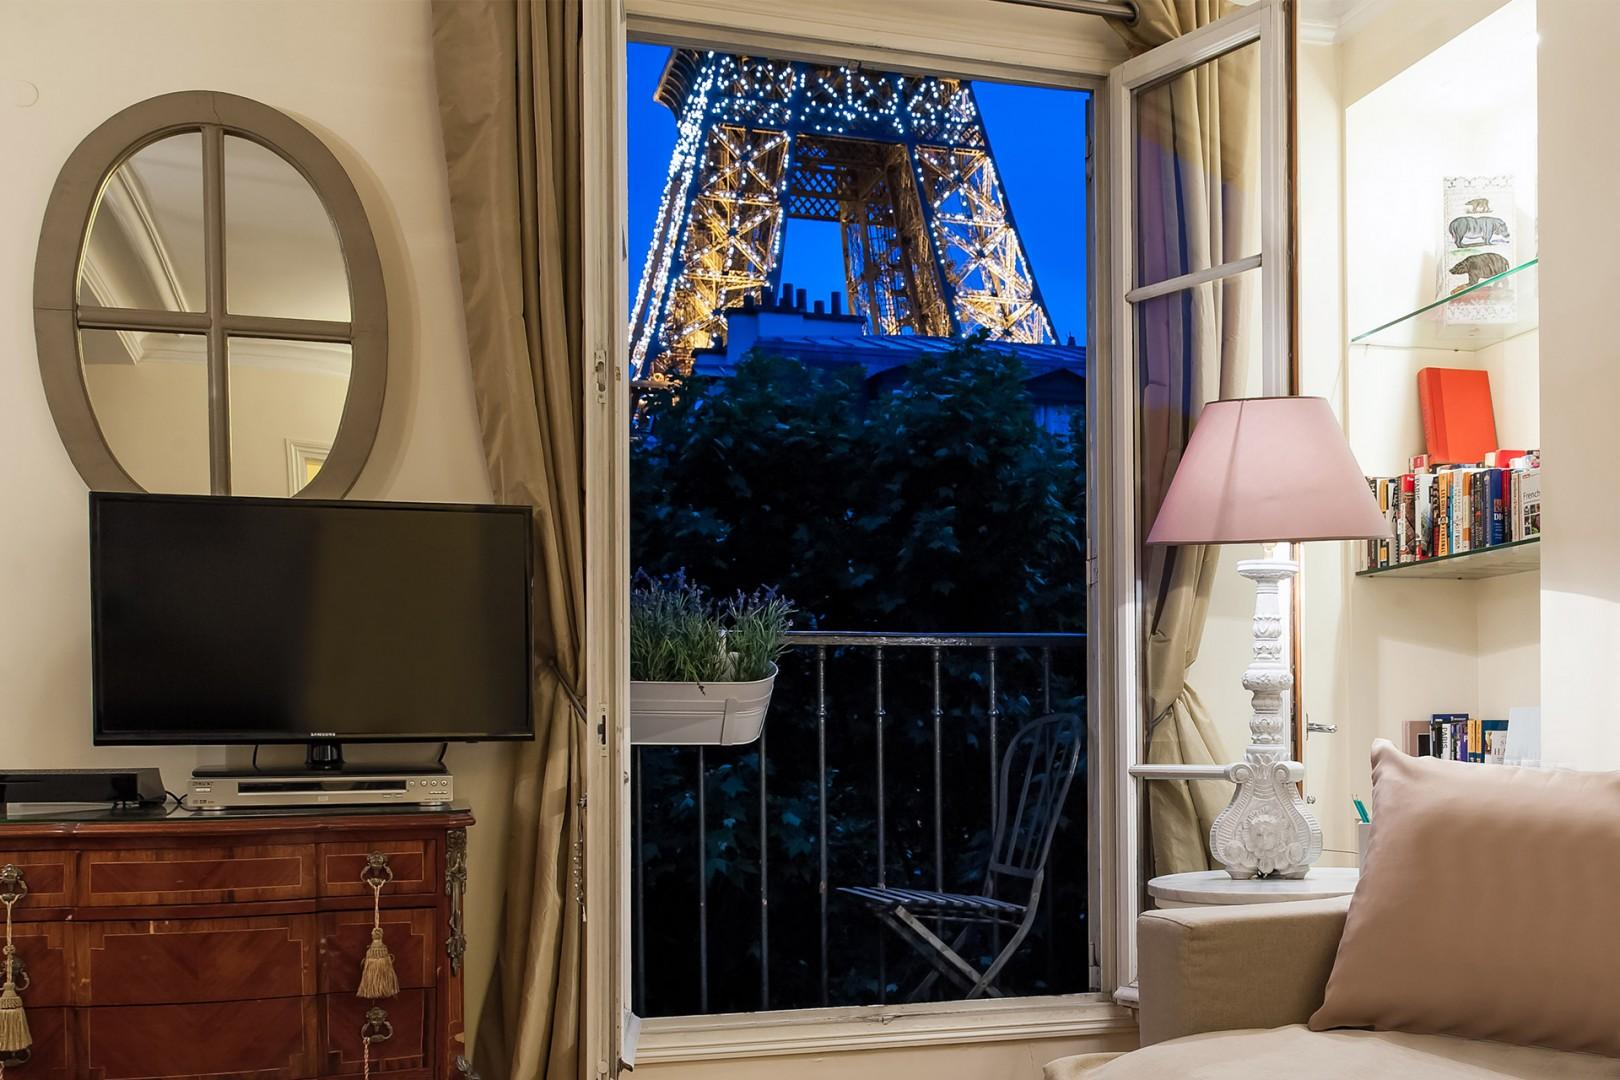 Before going to bed, watch the Eiffel Tower sparkle just outside your window.